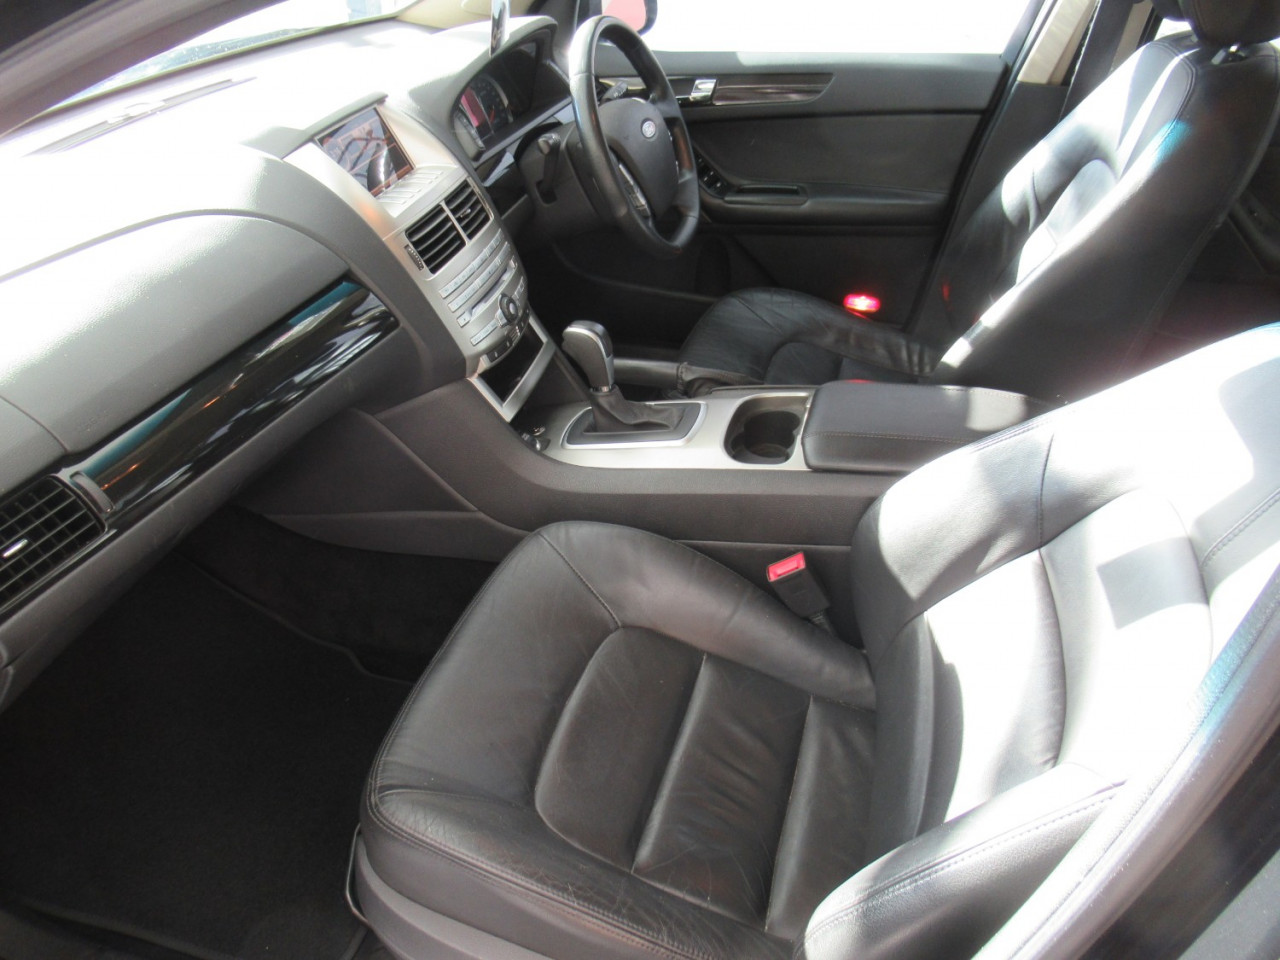 2008 Ford G6 Series FG G6E Sedan Image 23